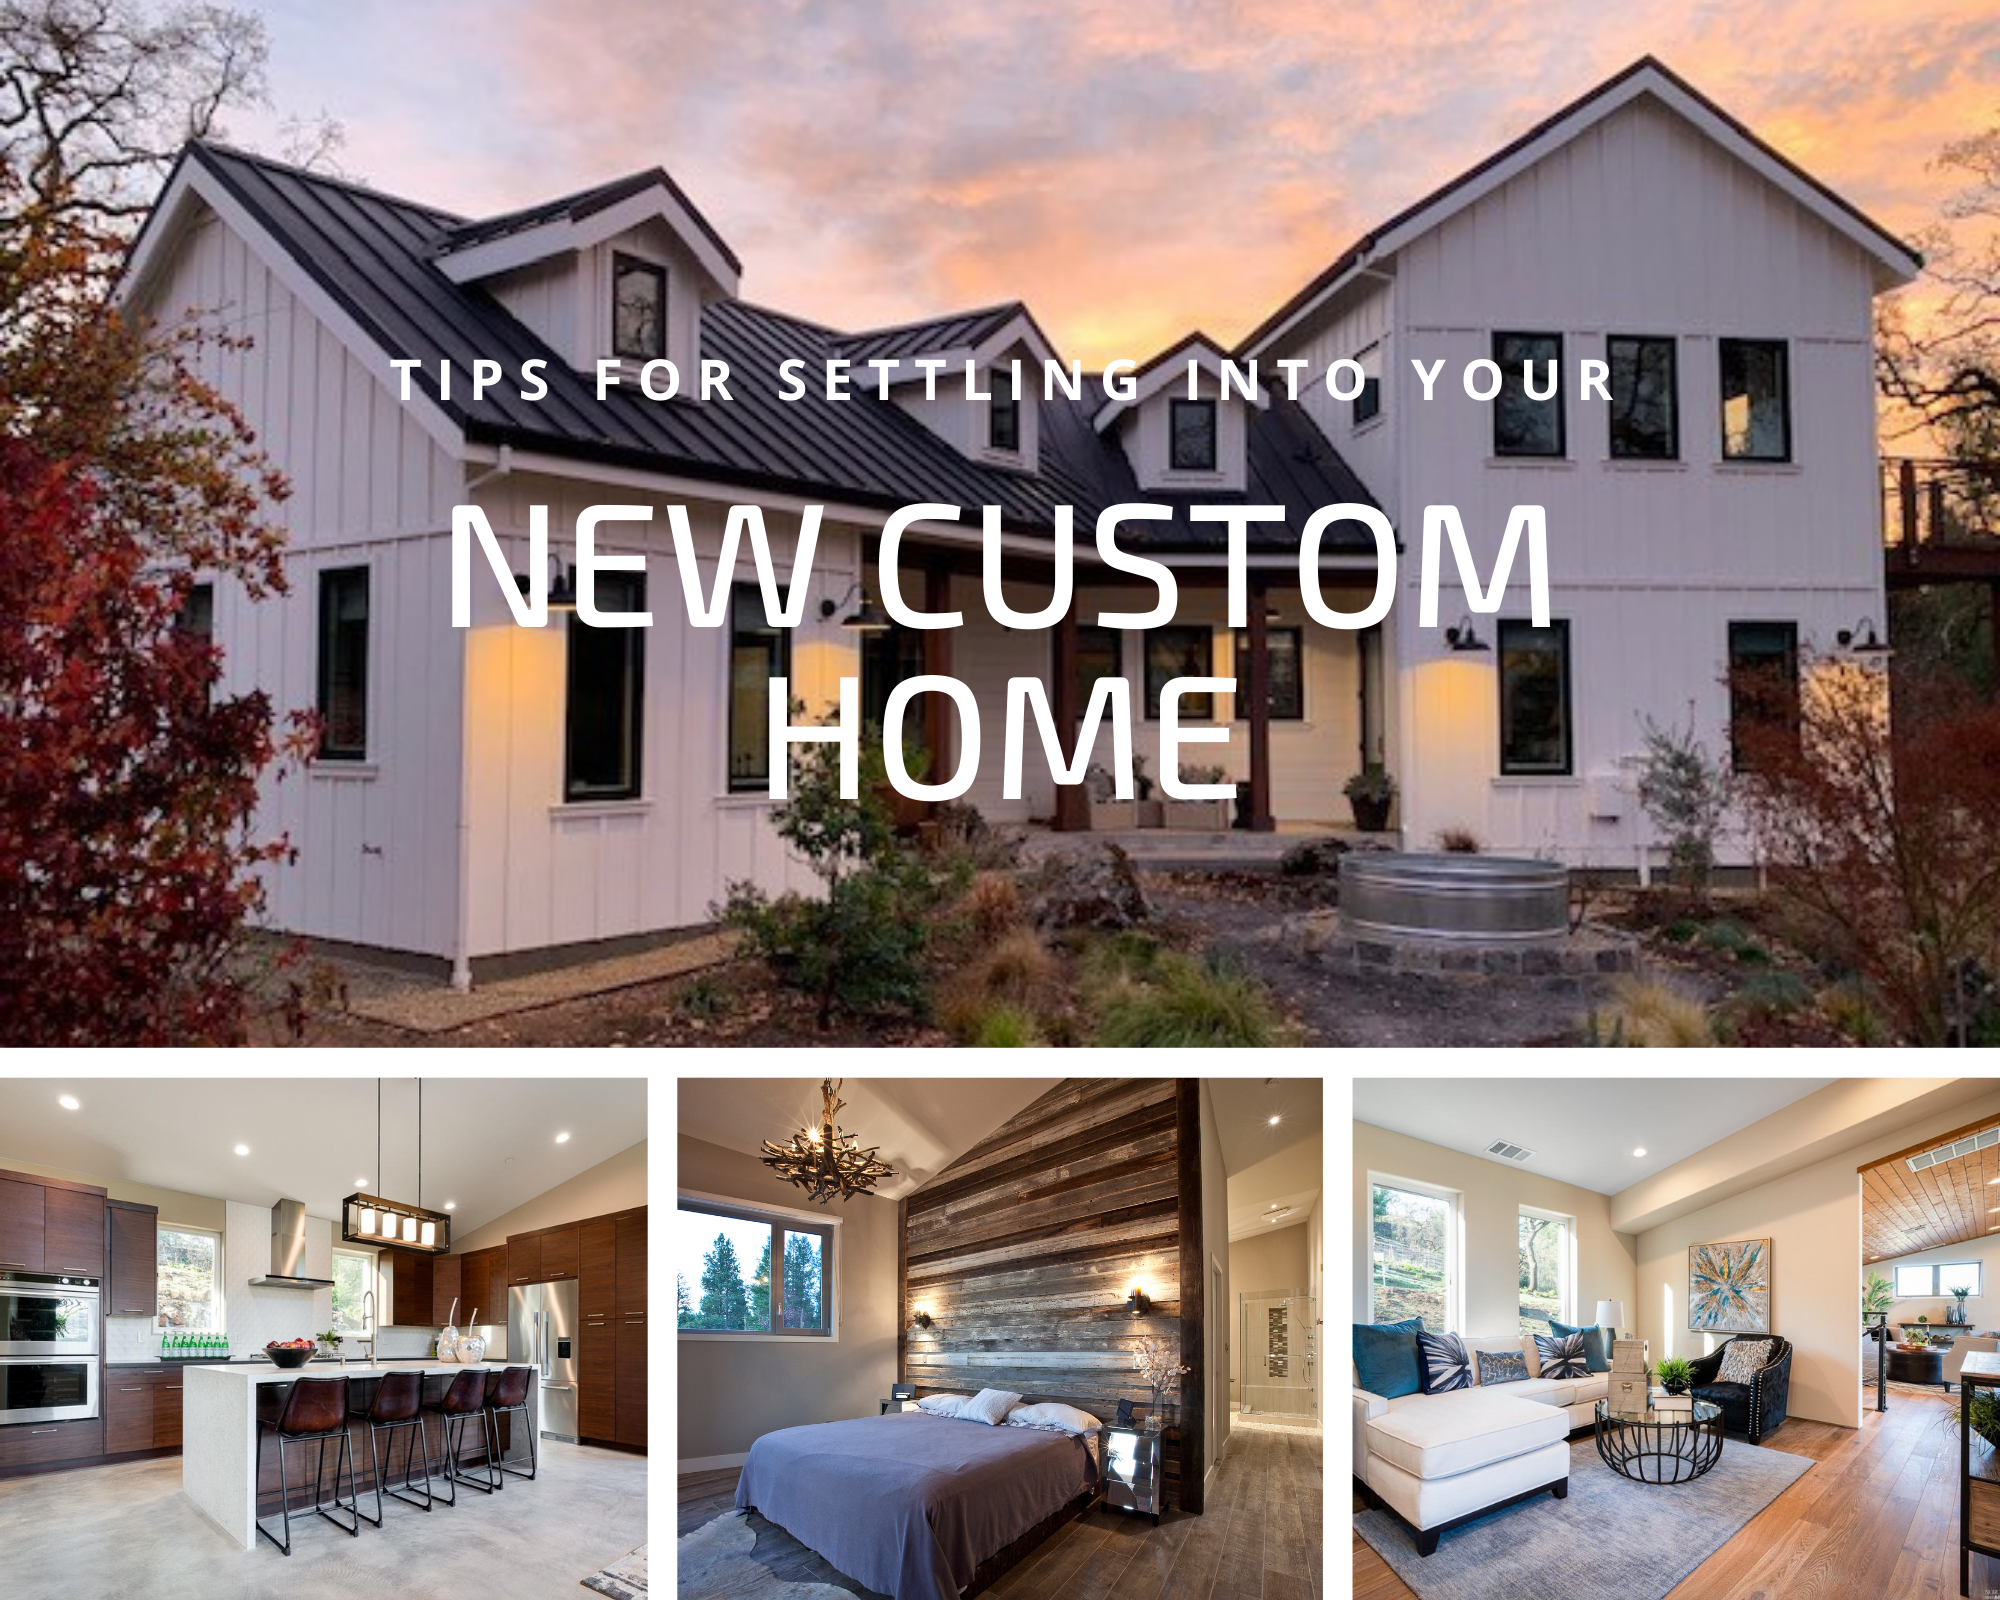 Tips For Settling Into Your New Custom Home